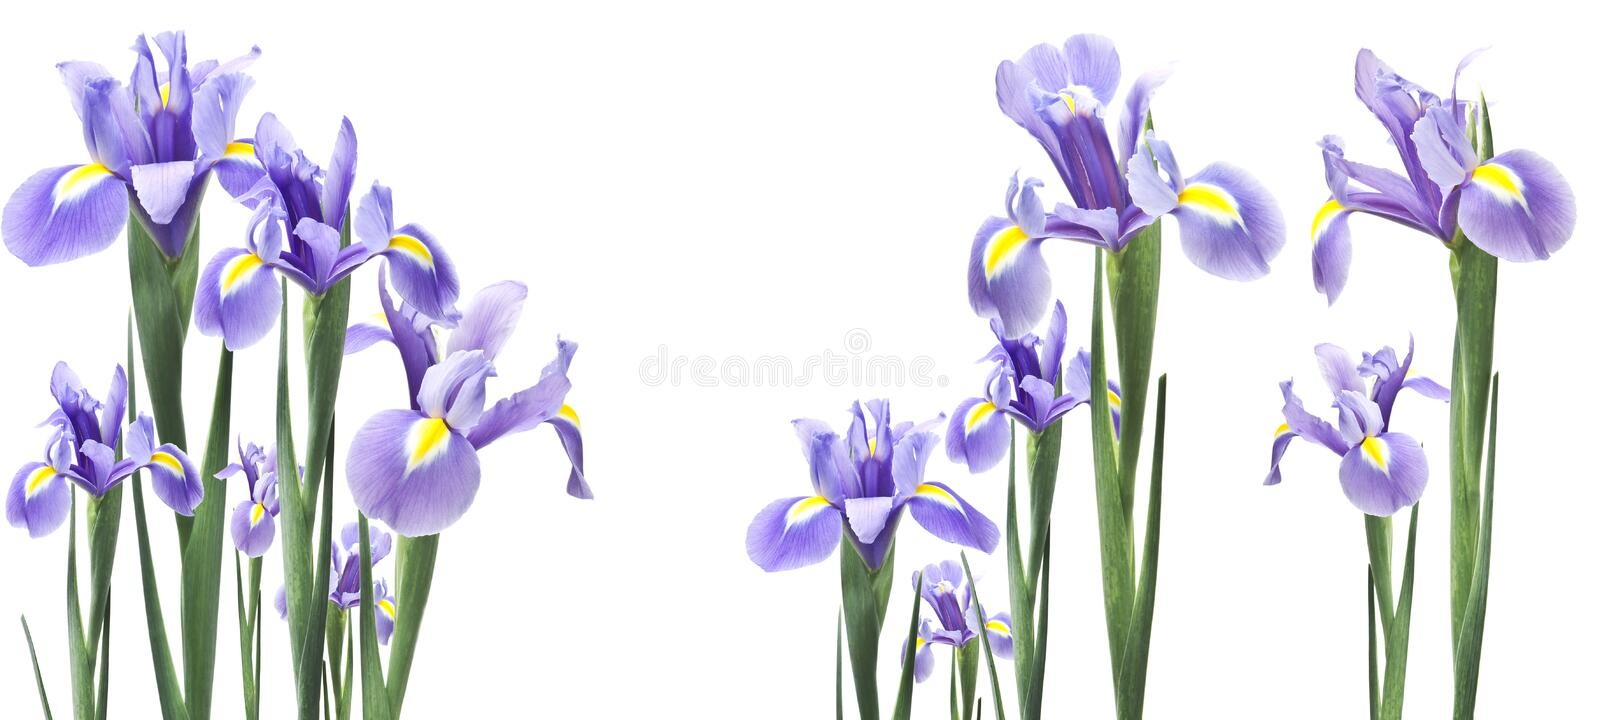 Lily flower isolated on white stock photos